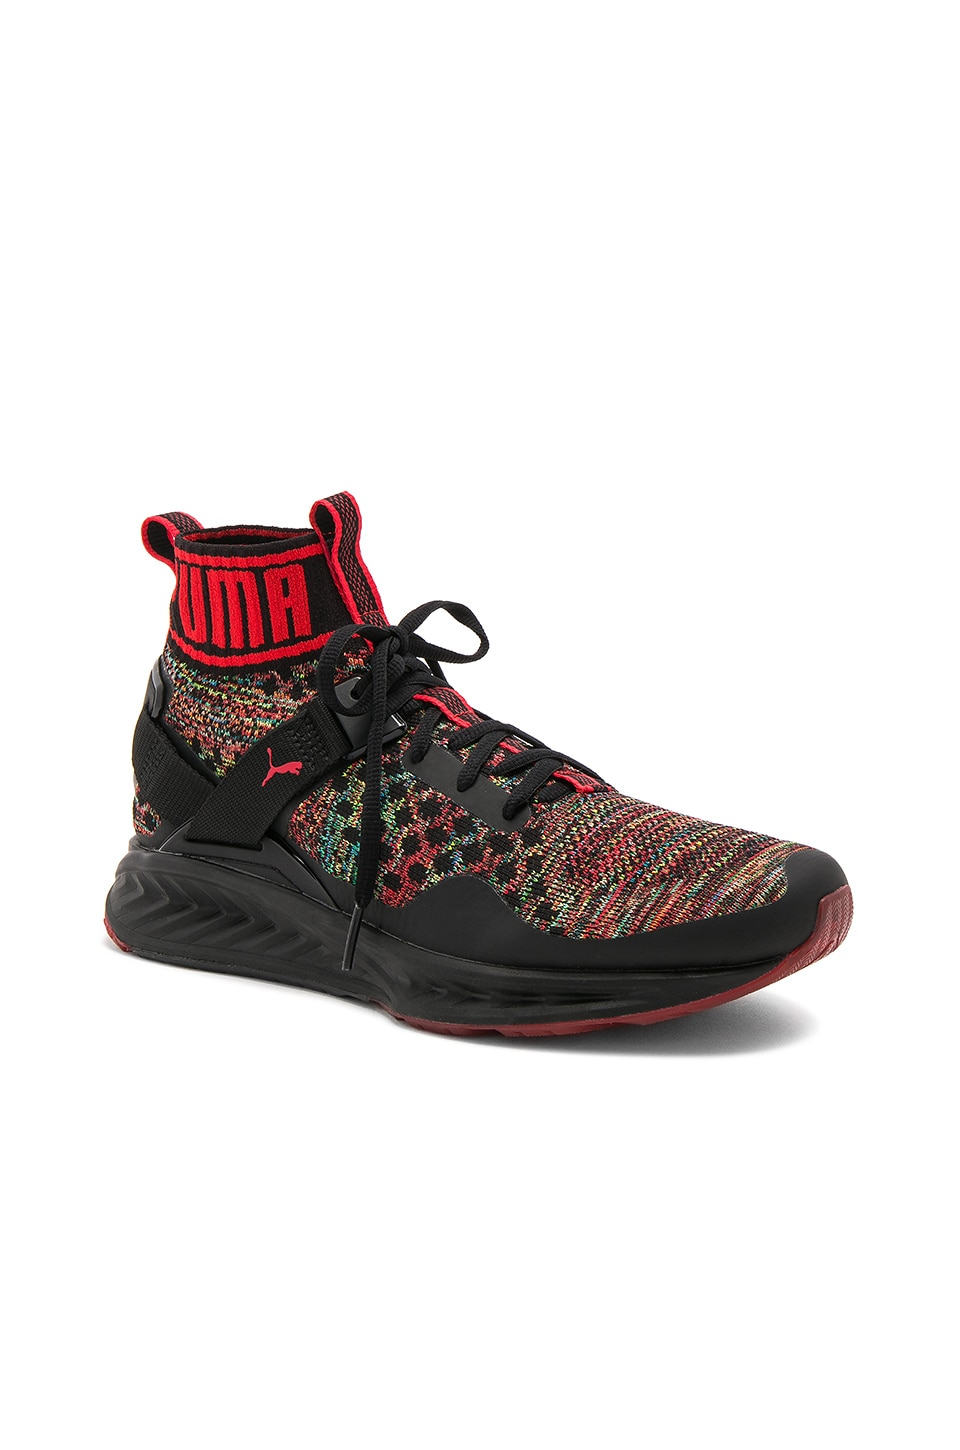 new product 51686 c0771 Puma Select Ignite Evoknit Multicolor in Puma Black & High ...